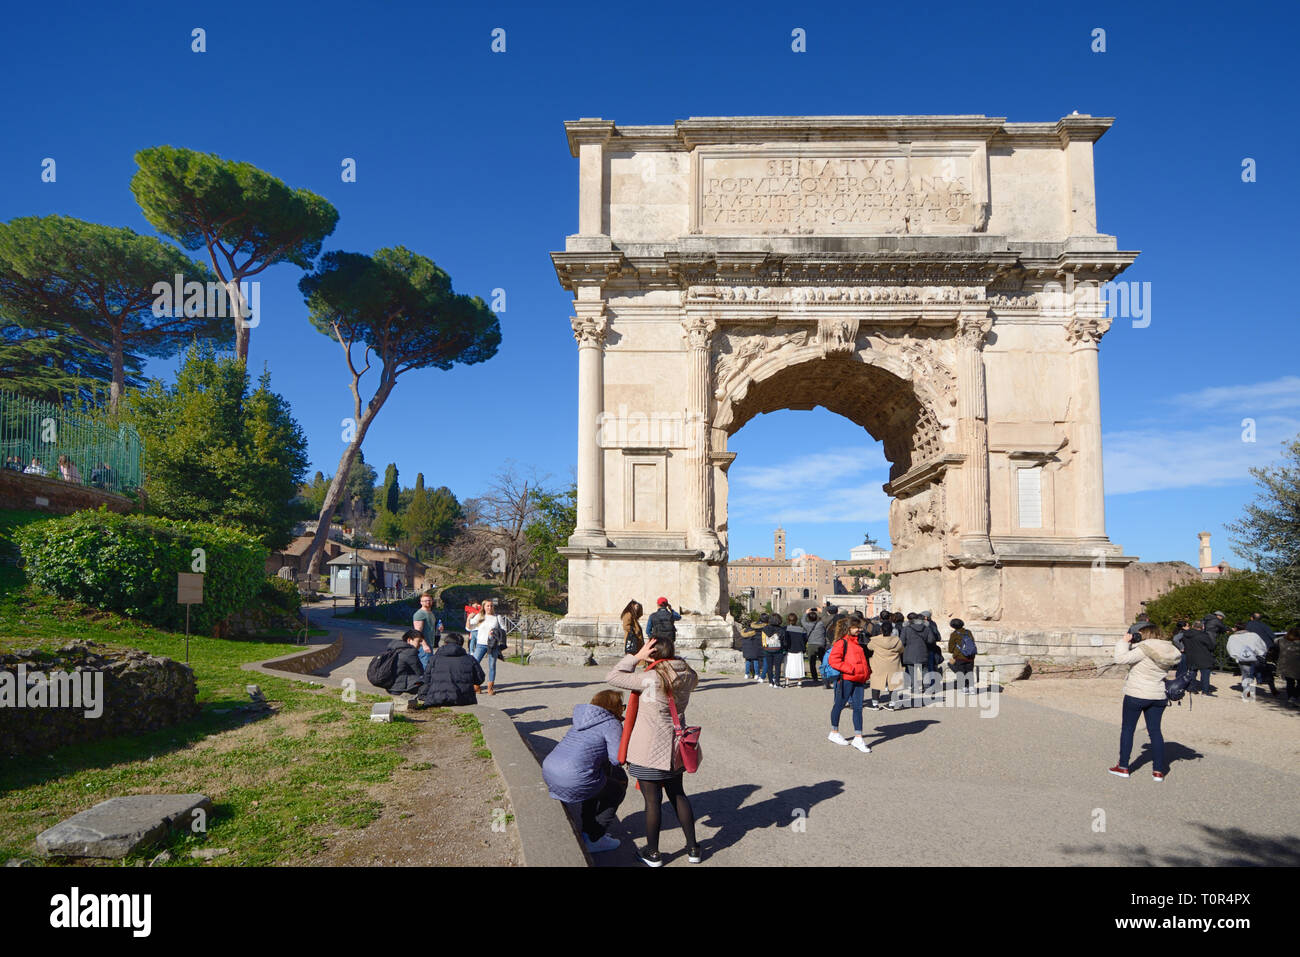 Arch Over Road Stock Photos & Arch Over Road Stock Images - Alamy